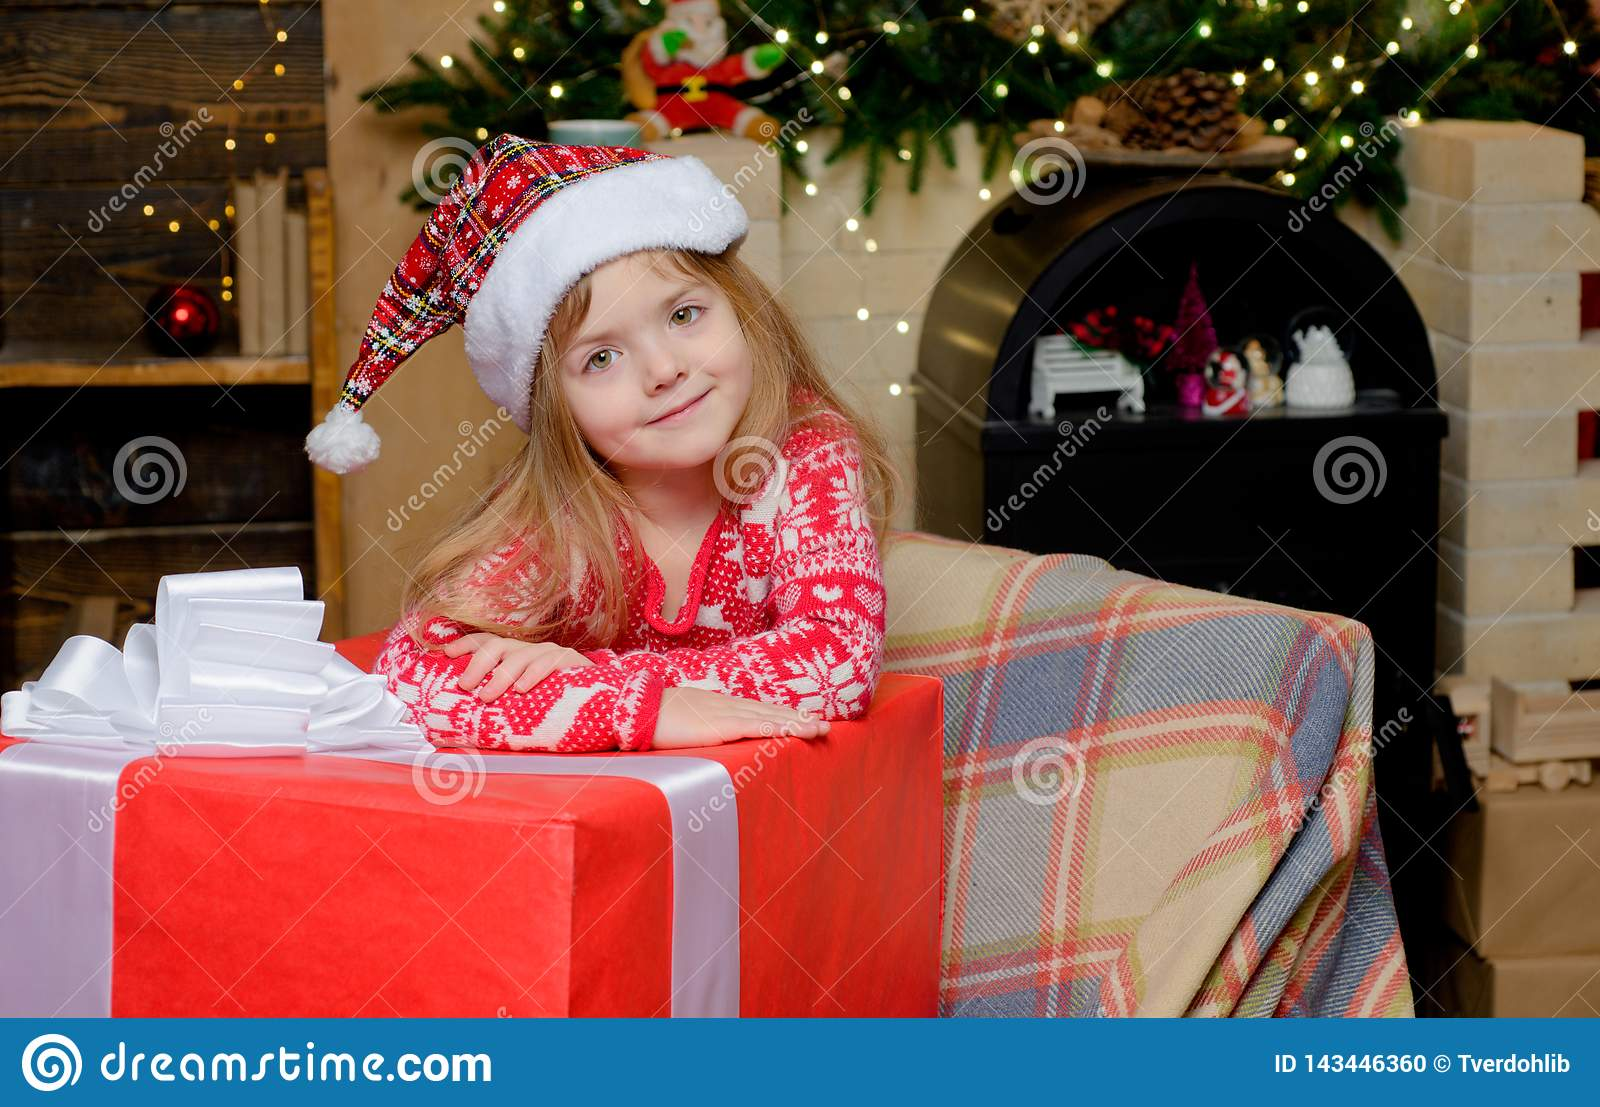 Happy Christmas little girl is looking at the camera with a big Christmas present. Beautiful little girl wearing Santa